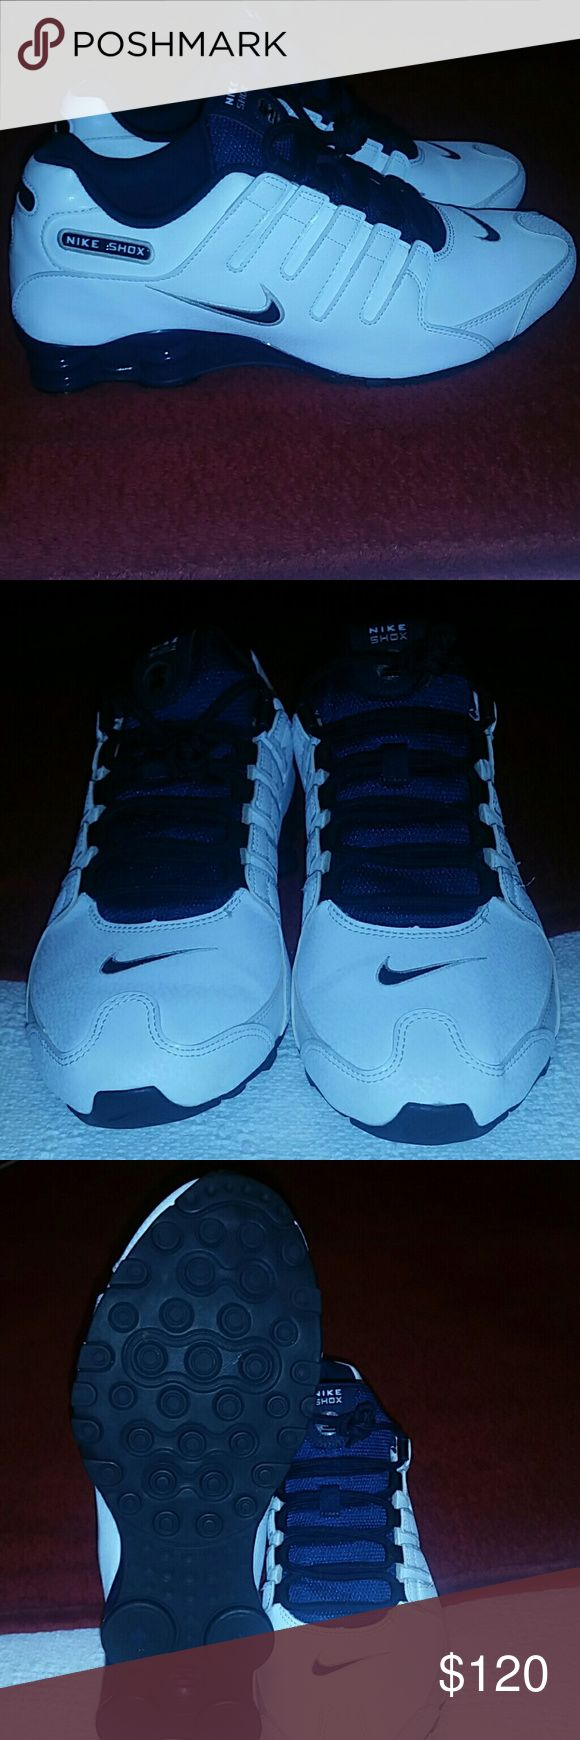 Nike Shox NZ Nike Shox NZ EU 501524-105 White Black Blue Obsidian Silver Mens Shoes Excellent condition No bends at toebox Nike Shoes Sneakers